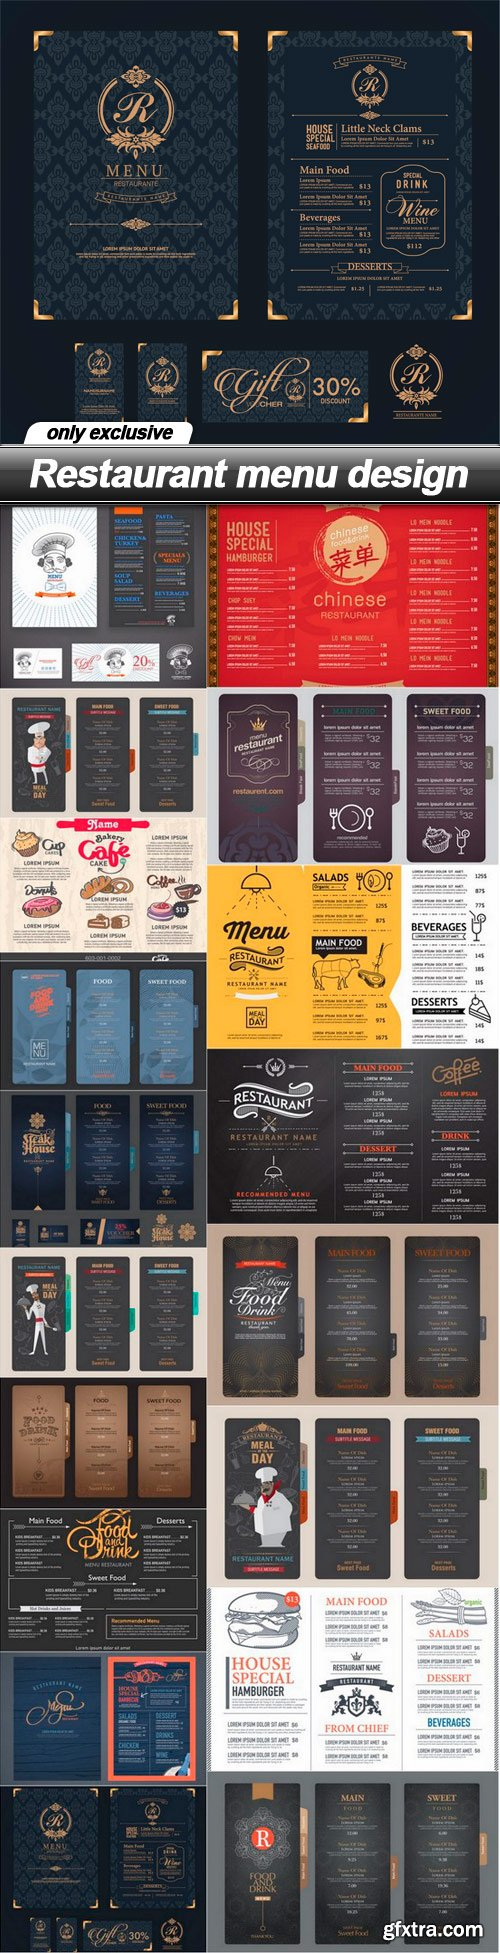 Restaurant menu design - 18 EPS